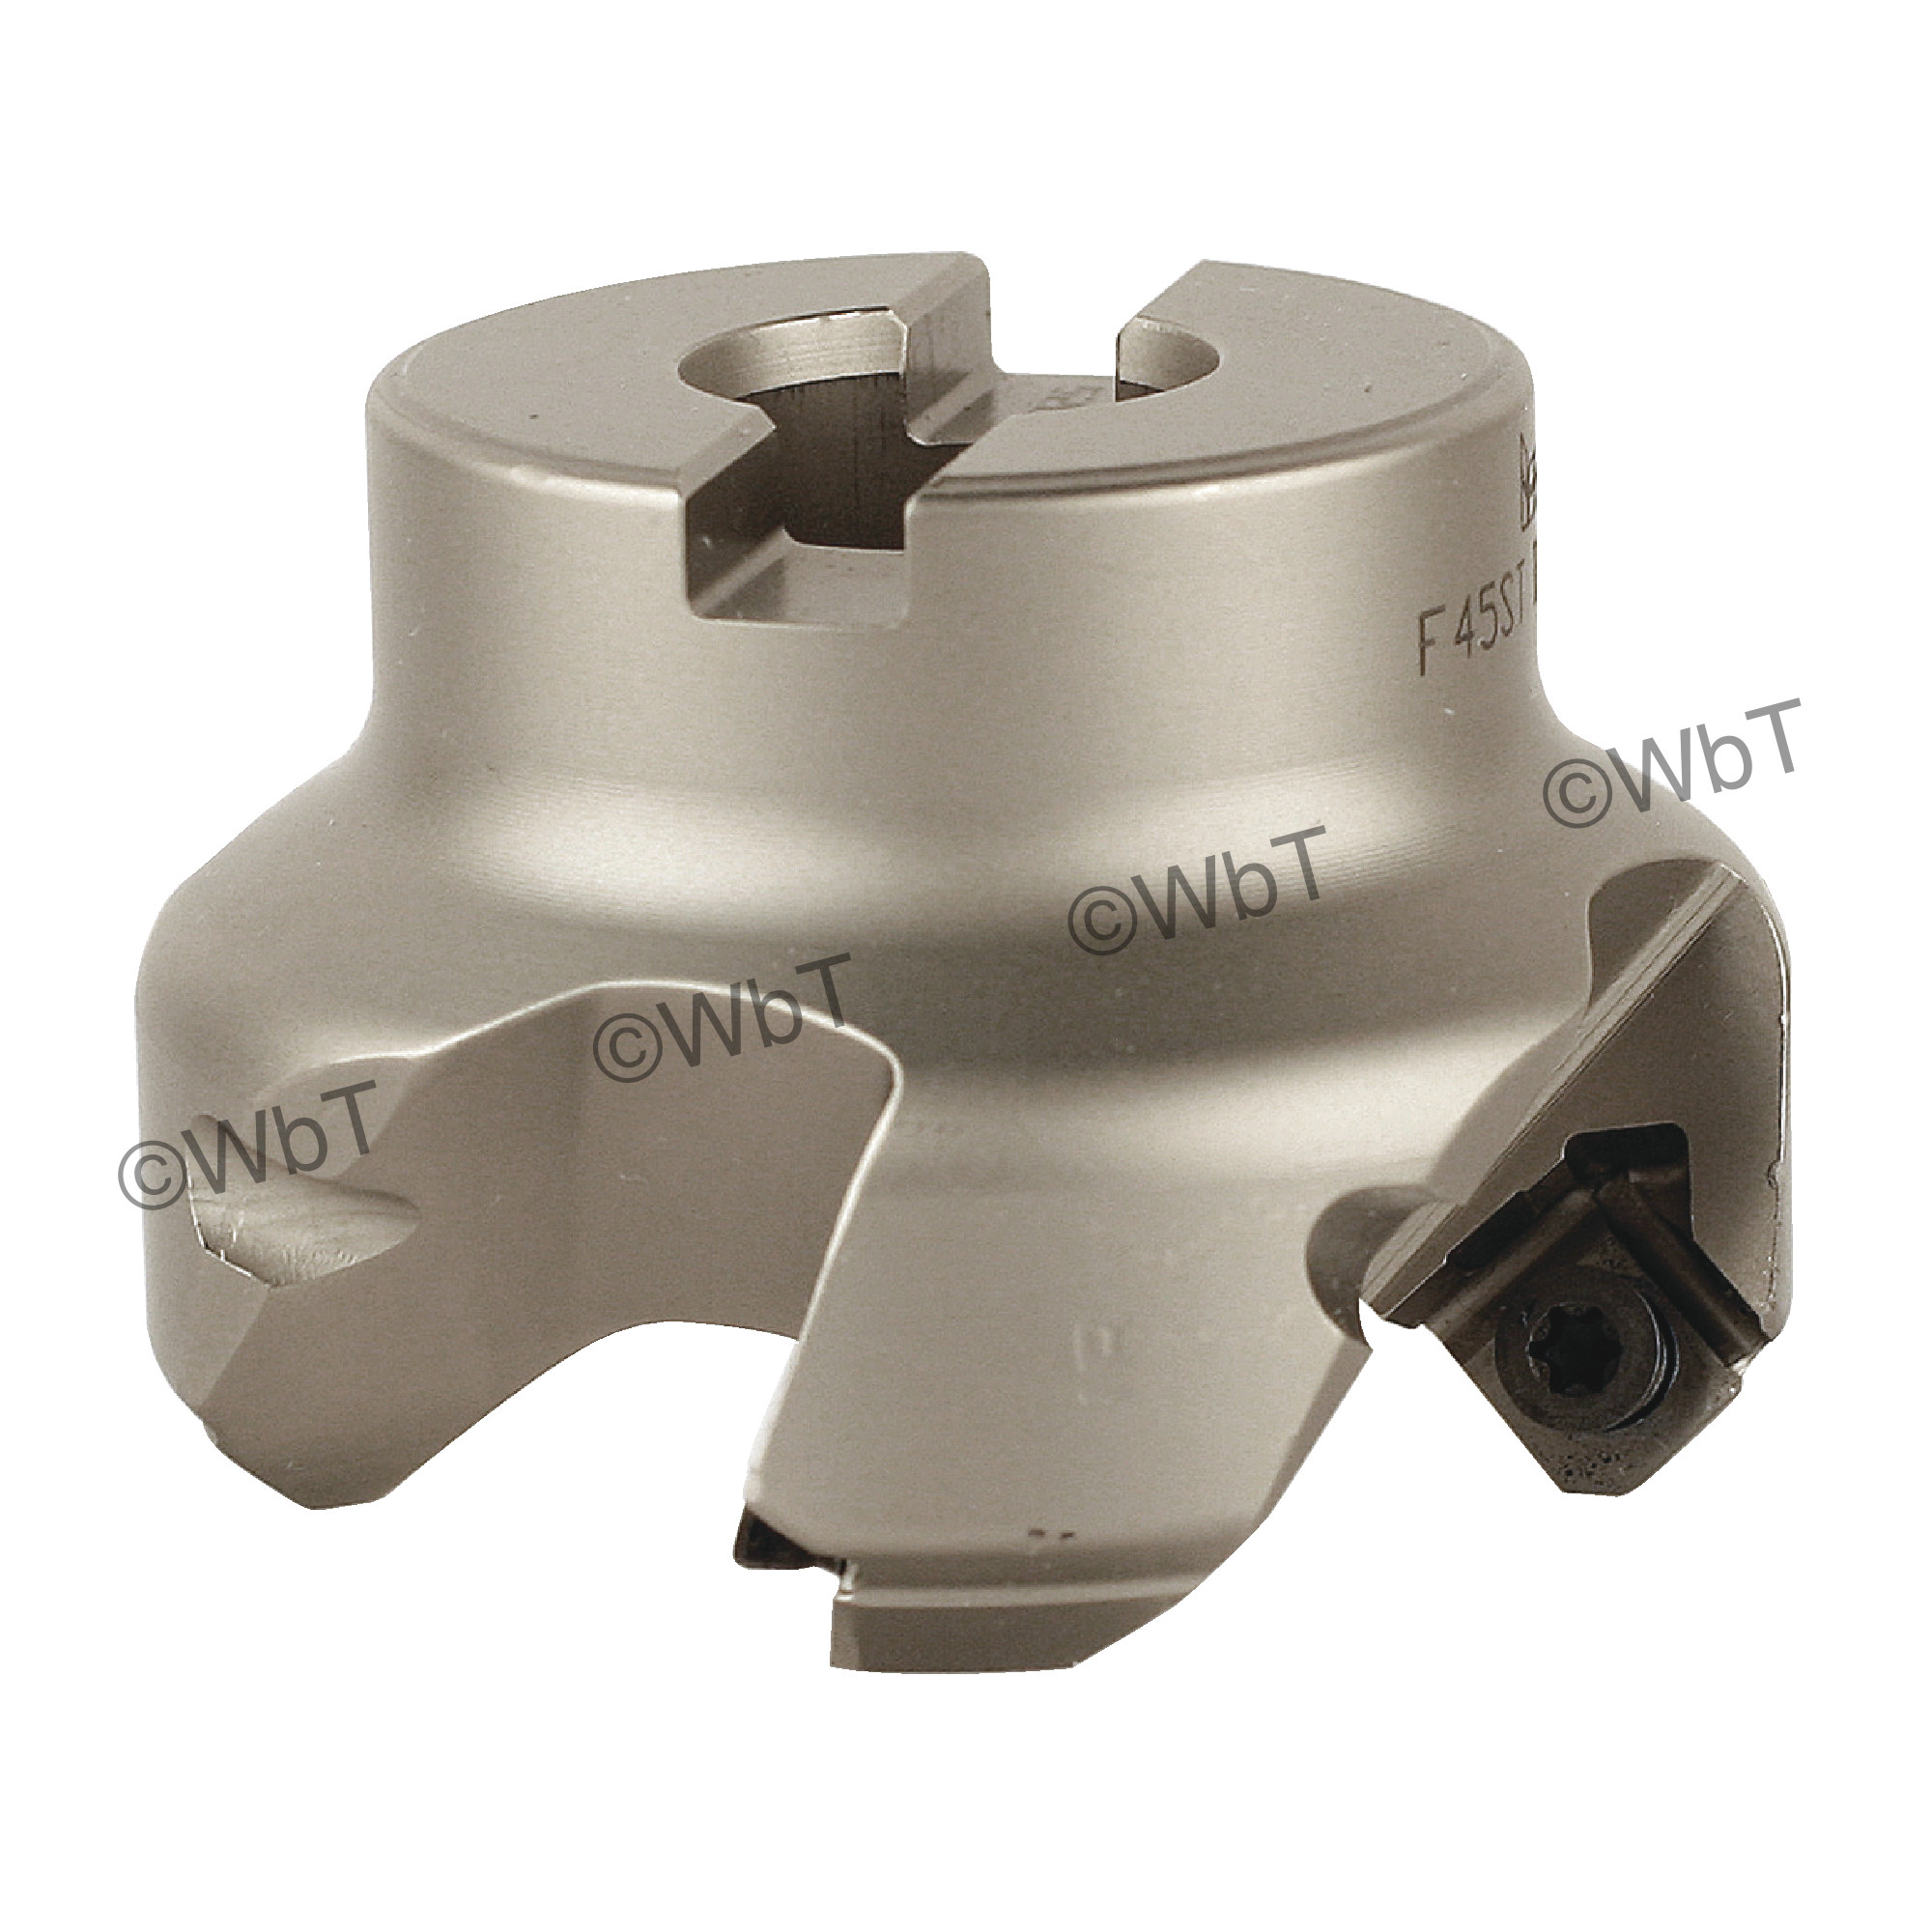 """ISCAR - F45ST-D2.00-.75 / 2.000"""" 45° Face Mill for SEKT43AF_N Inserts / Right Hand"""